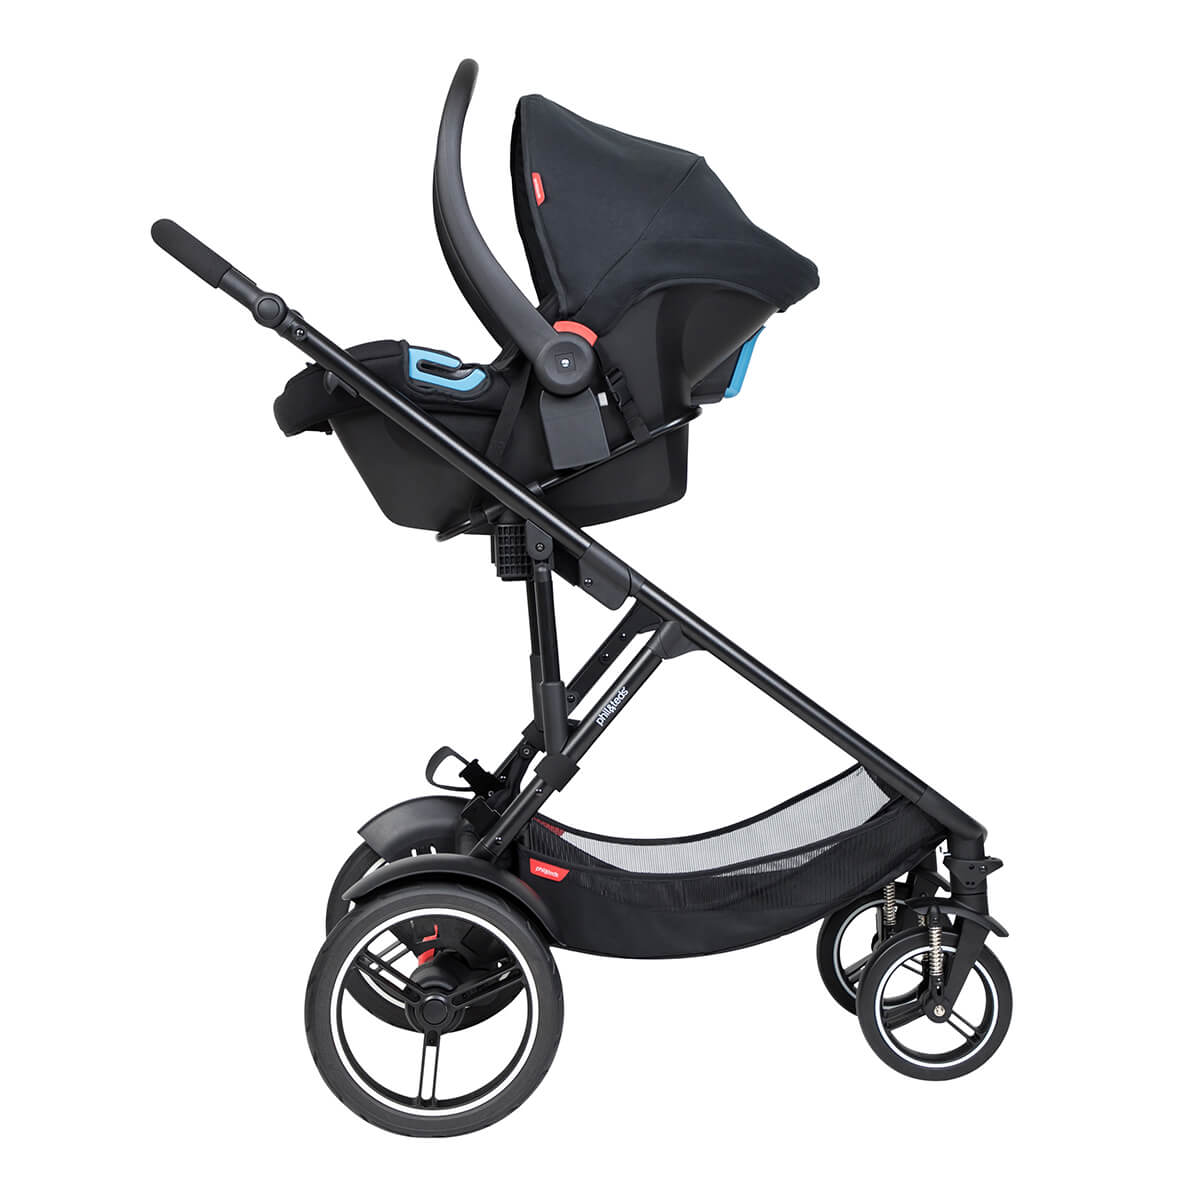 https://cdn.accentuate.io/4343378575394/19437753204914/philteds-voyager-buggy-with-travel-system-in-parent-facing-mode-v1626482951905.jpg?1200x1200